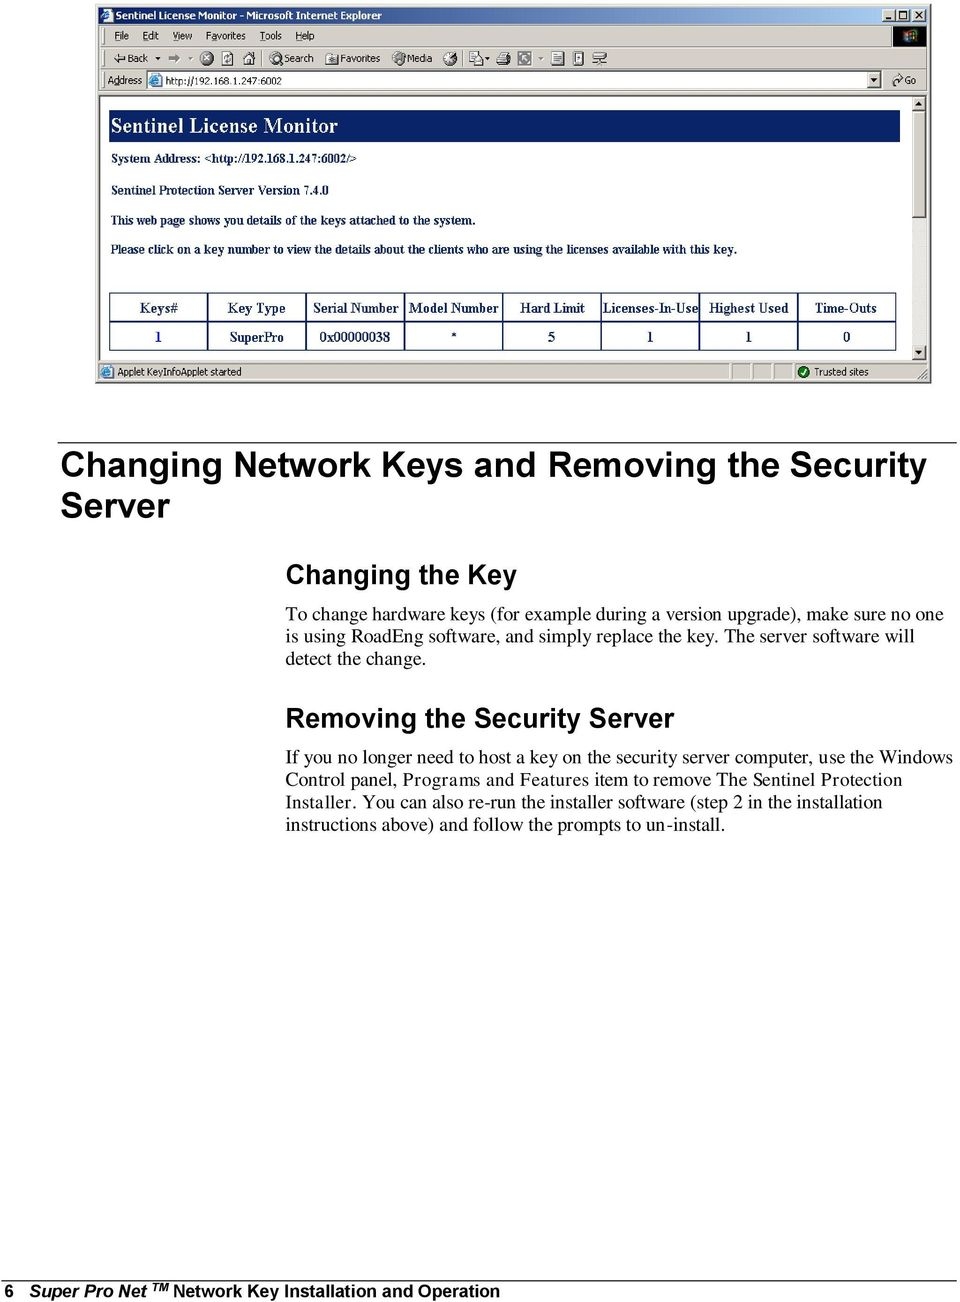 Removing the Security Server If you no longer need to host a key on the security server computer, use the Windows Control panel, Programs and Features item to